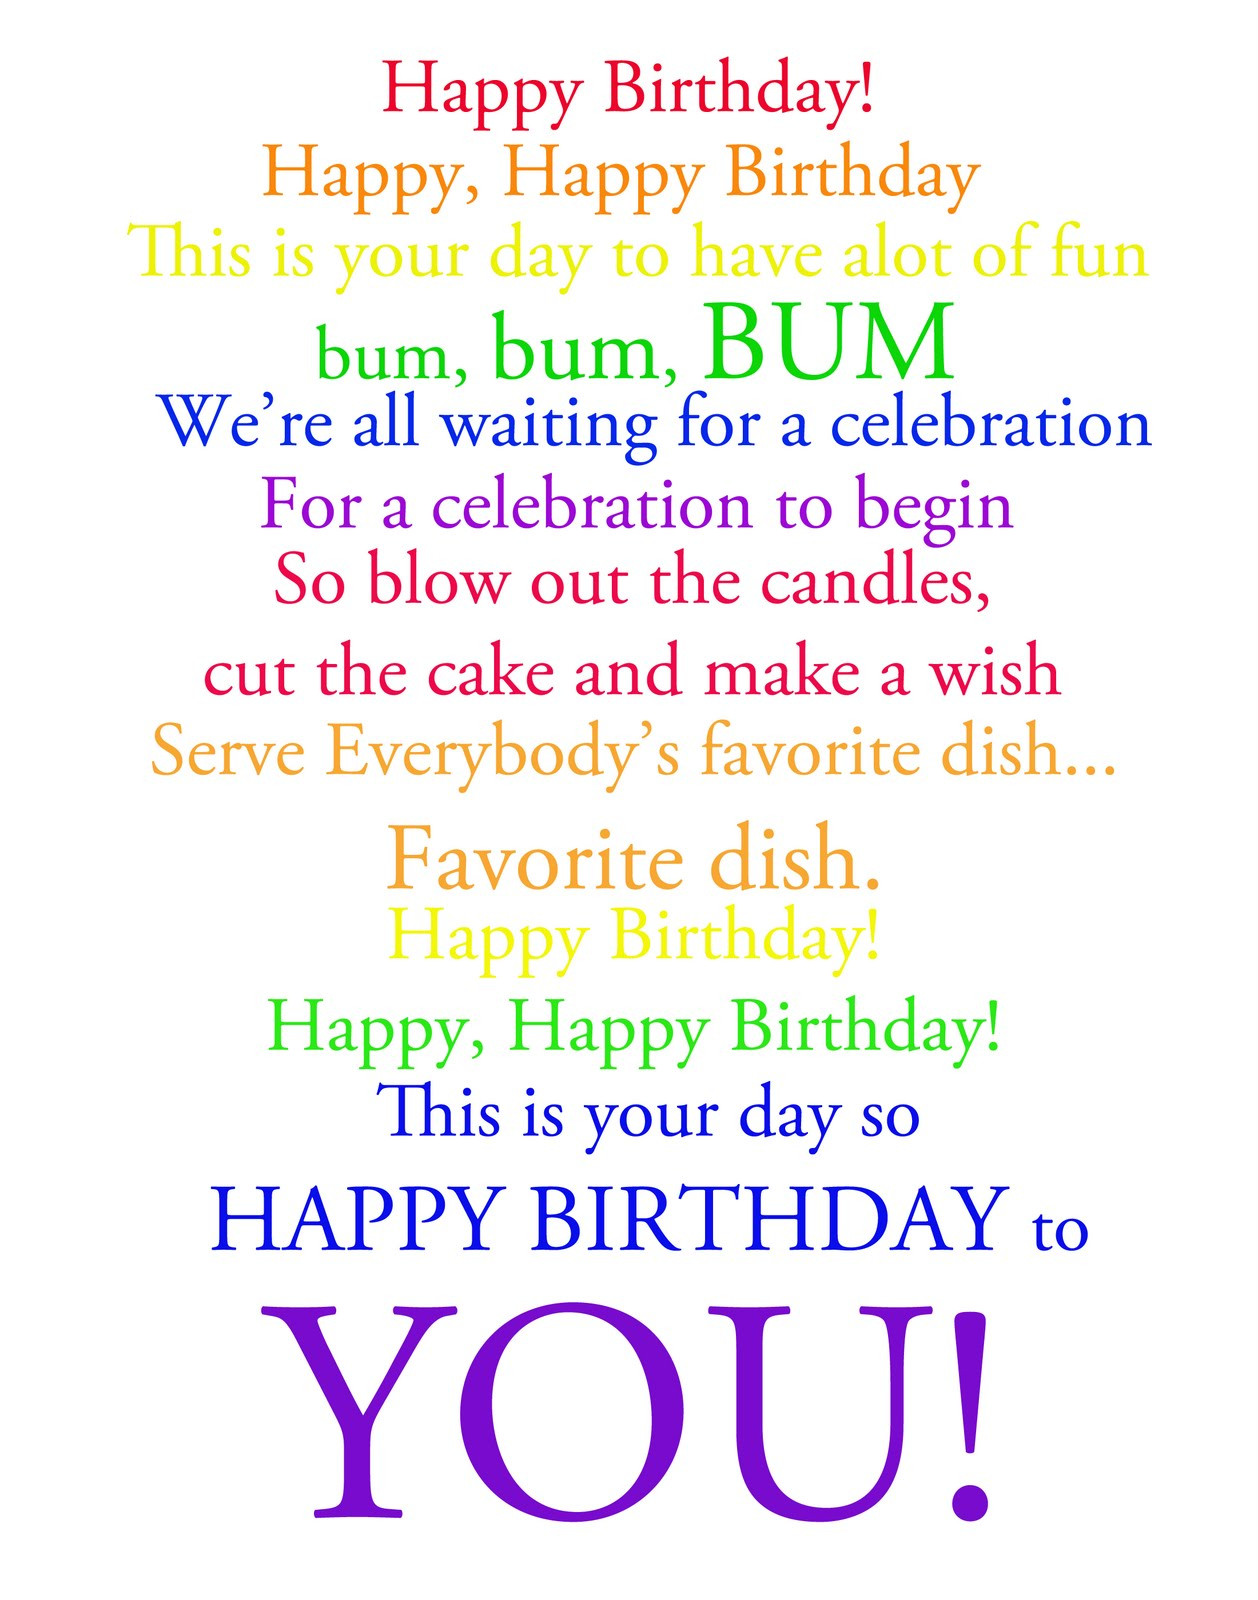 Best ideas about Funny Birthday Song Lyrics . Save or Pin The Project Corner Happy Birthday Happy Happy Birthday Now.